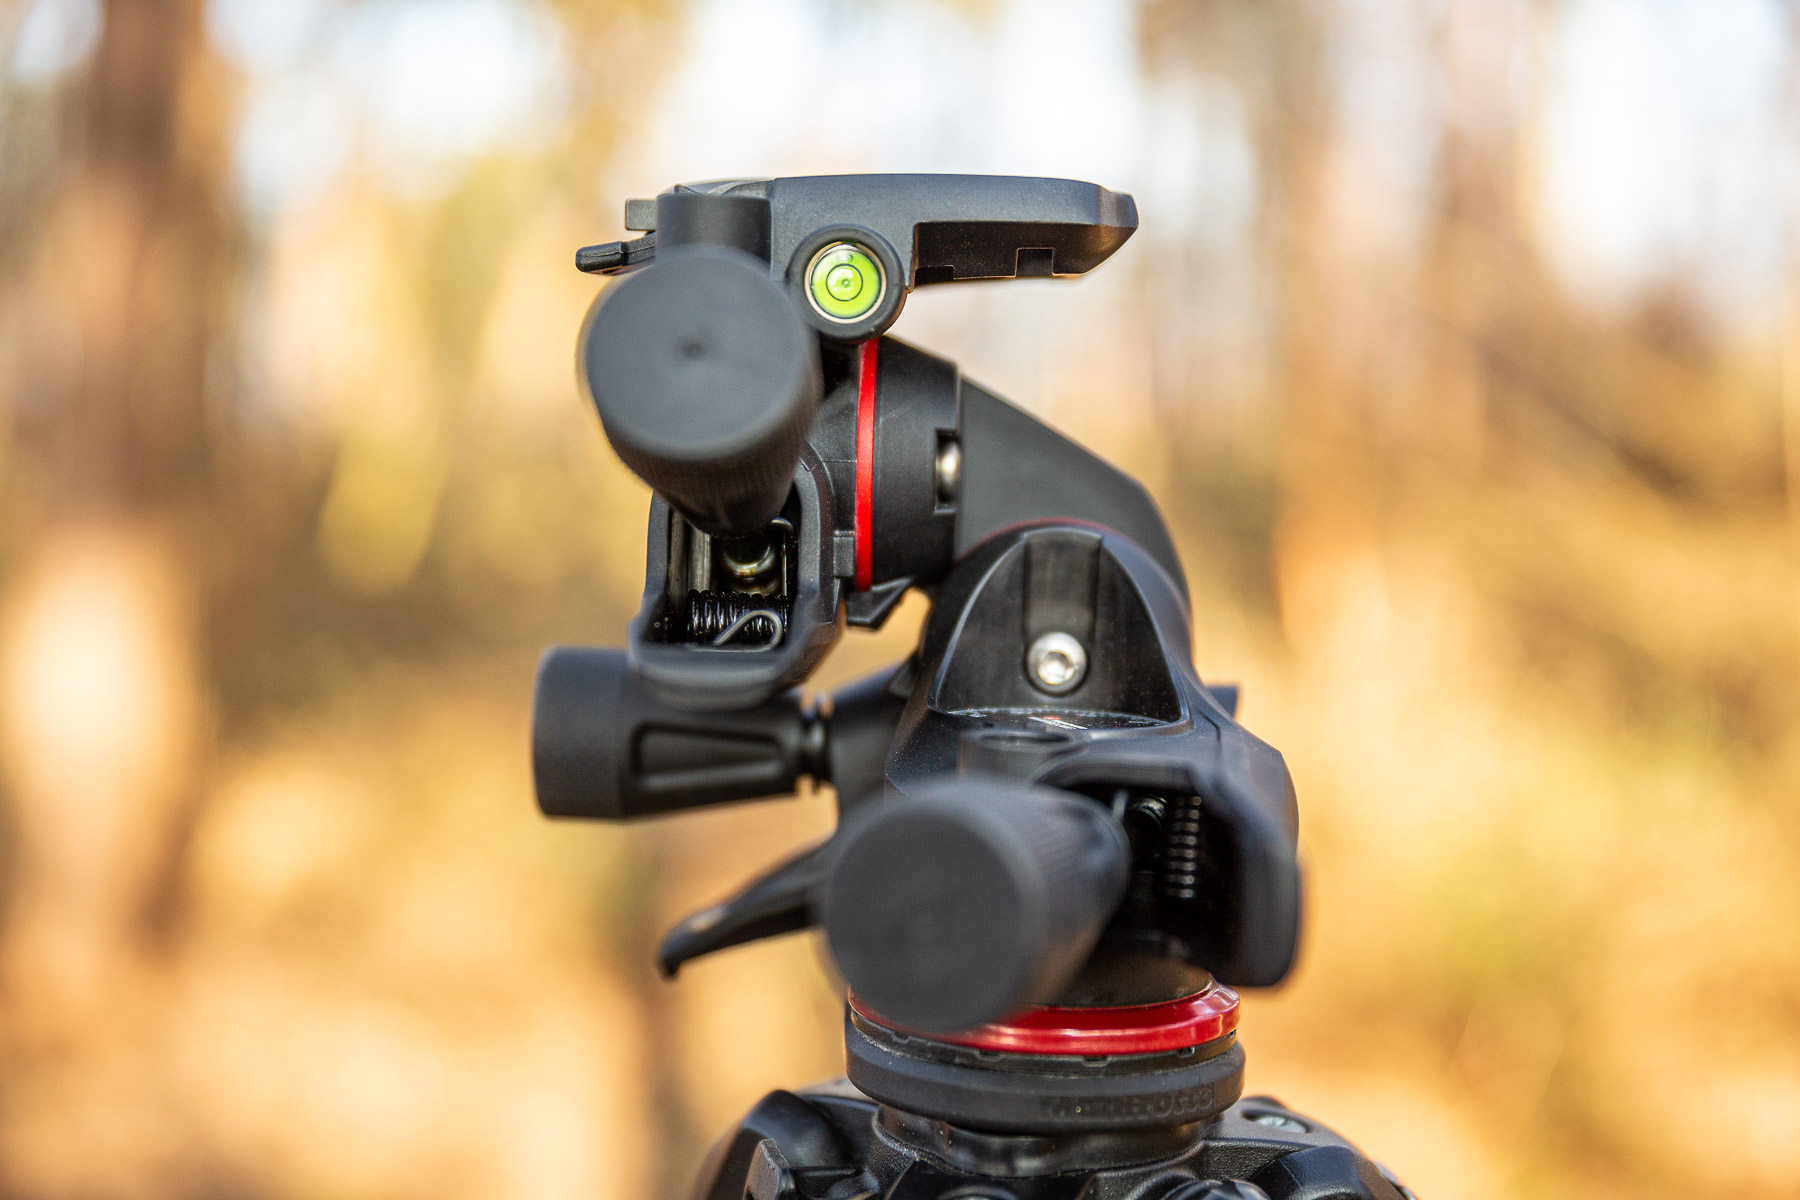 Manfrotto 410 vs Manfrotto MHXPRO-3WG, Manfrotto MHXPRO-3WG, manfrotto vergelijking, Manfrotto Geared Head comparison, Manfrotto Geared Head